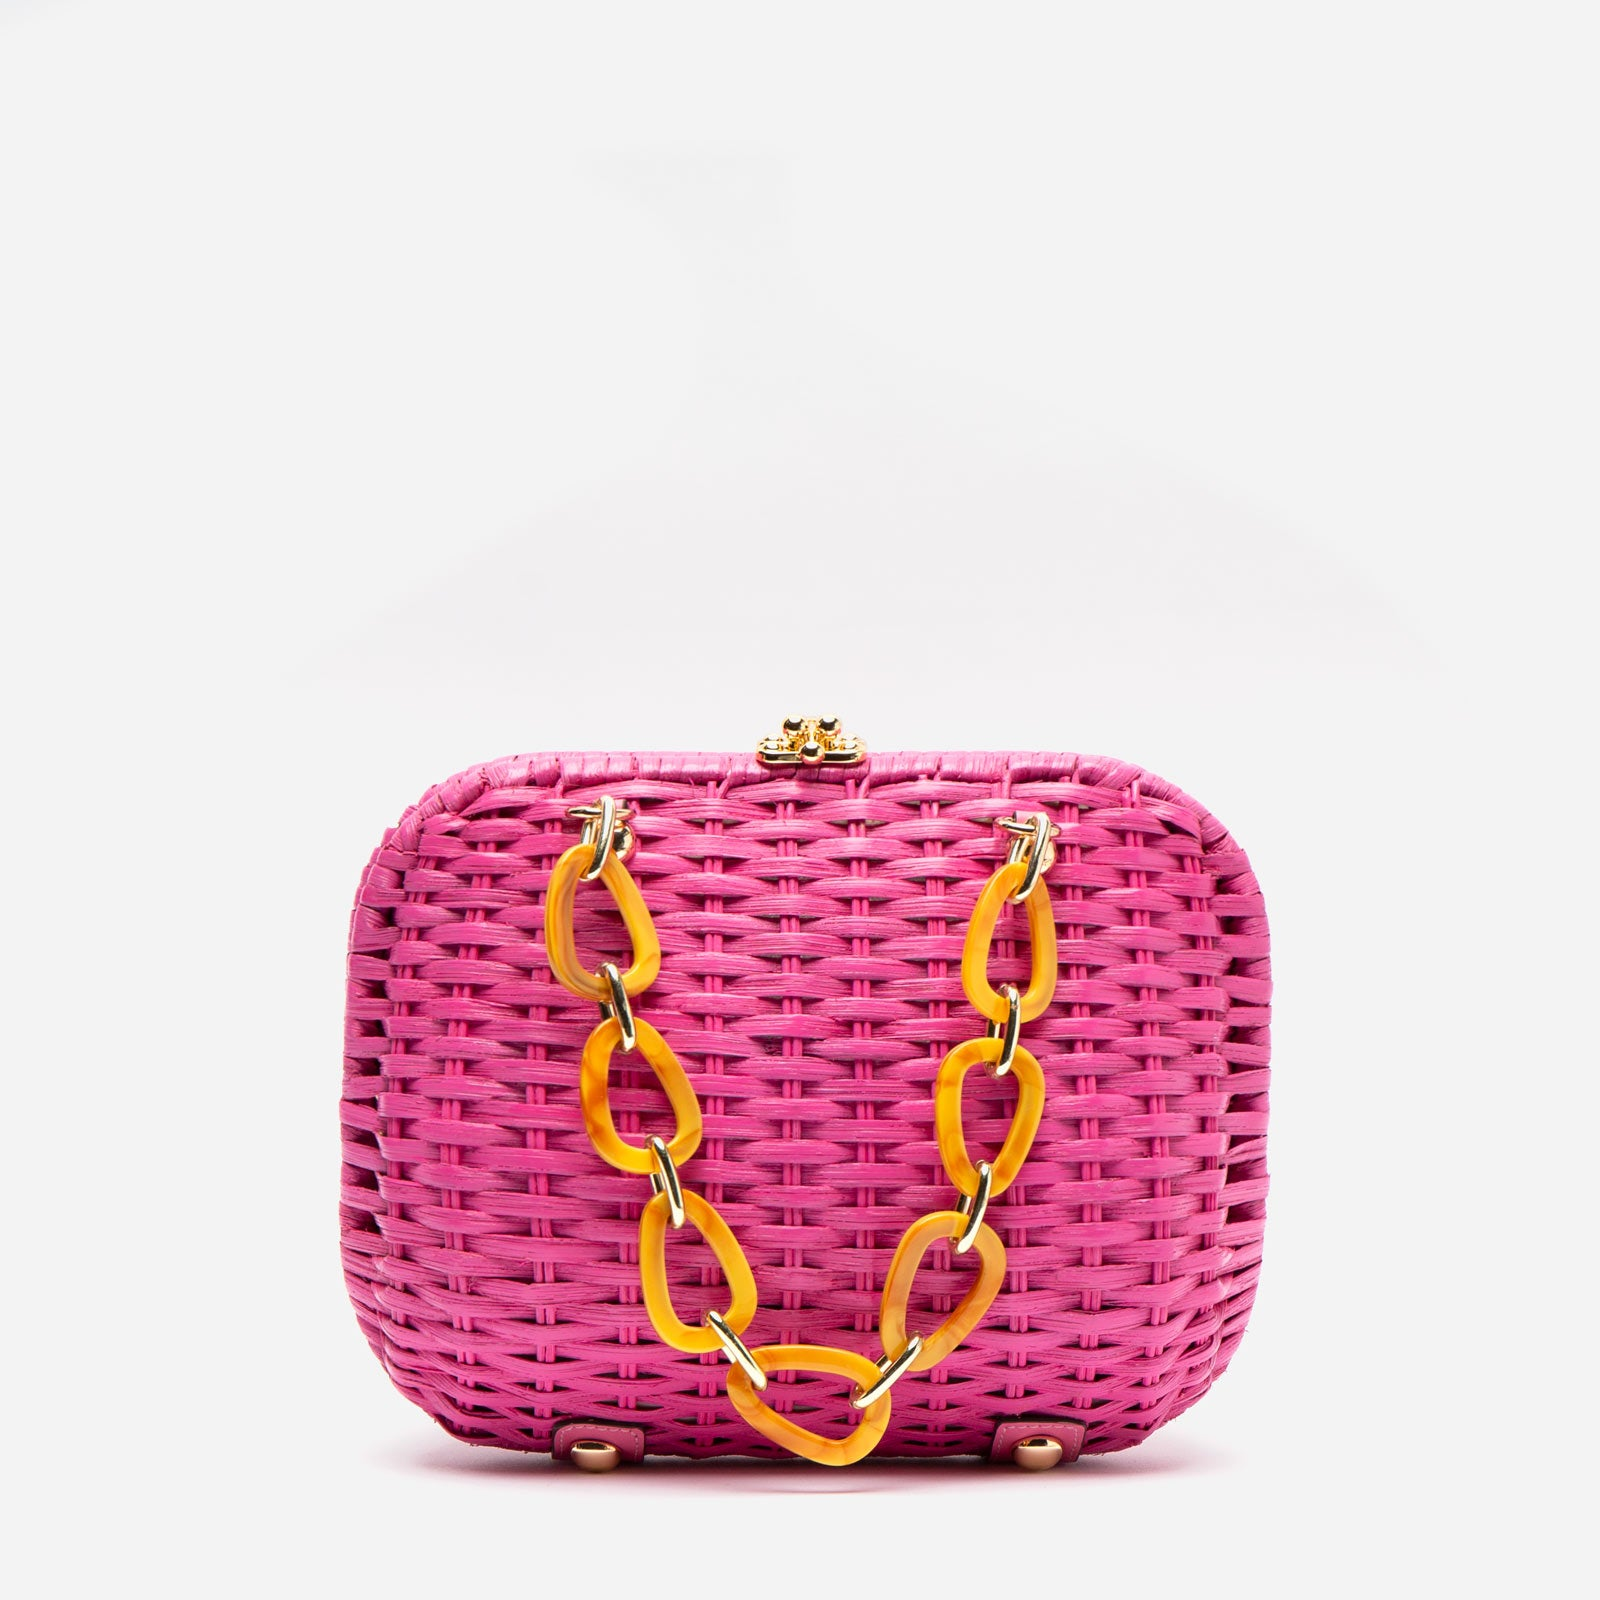 Hen Wicker Basket Pink